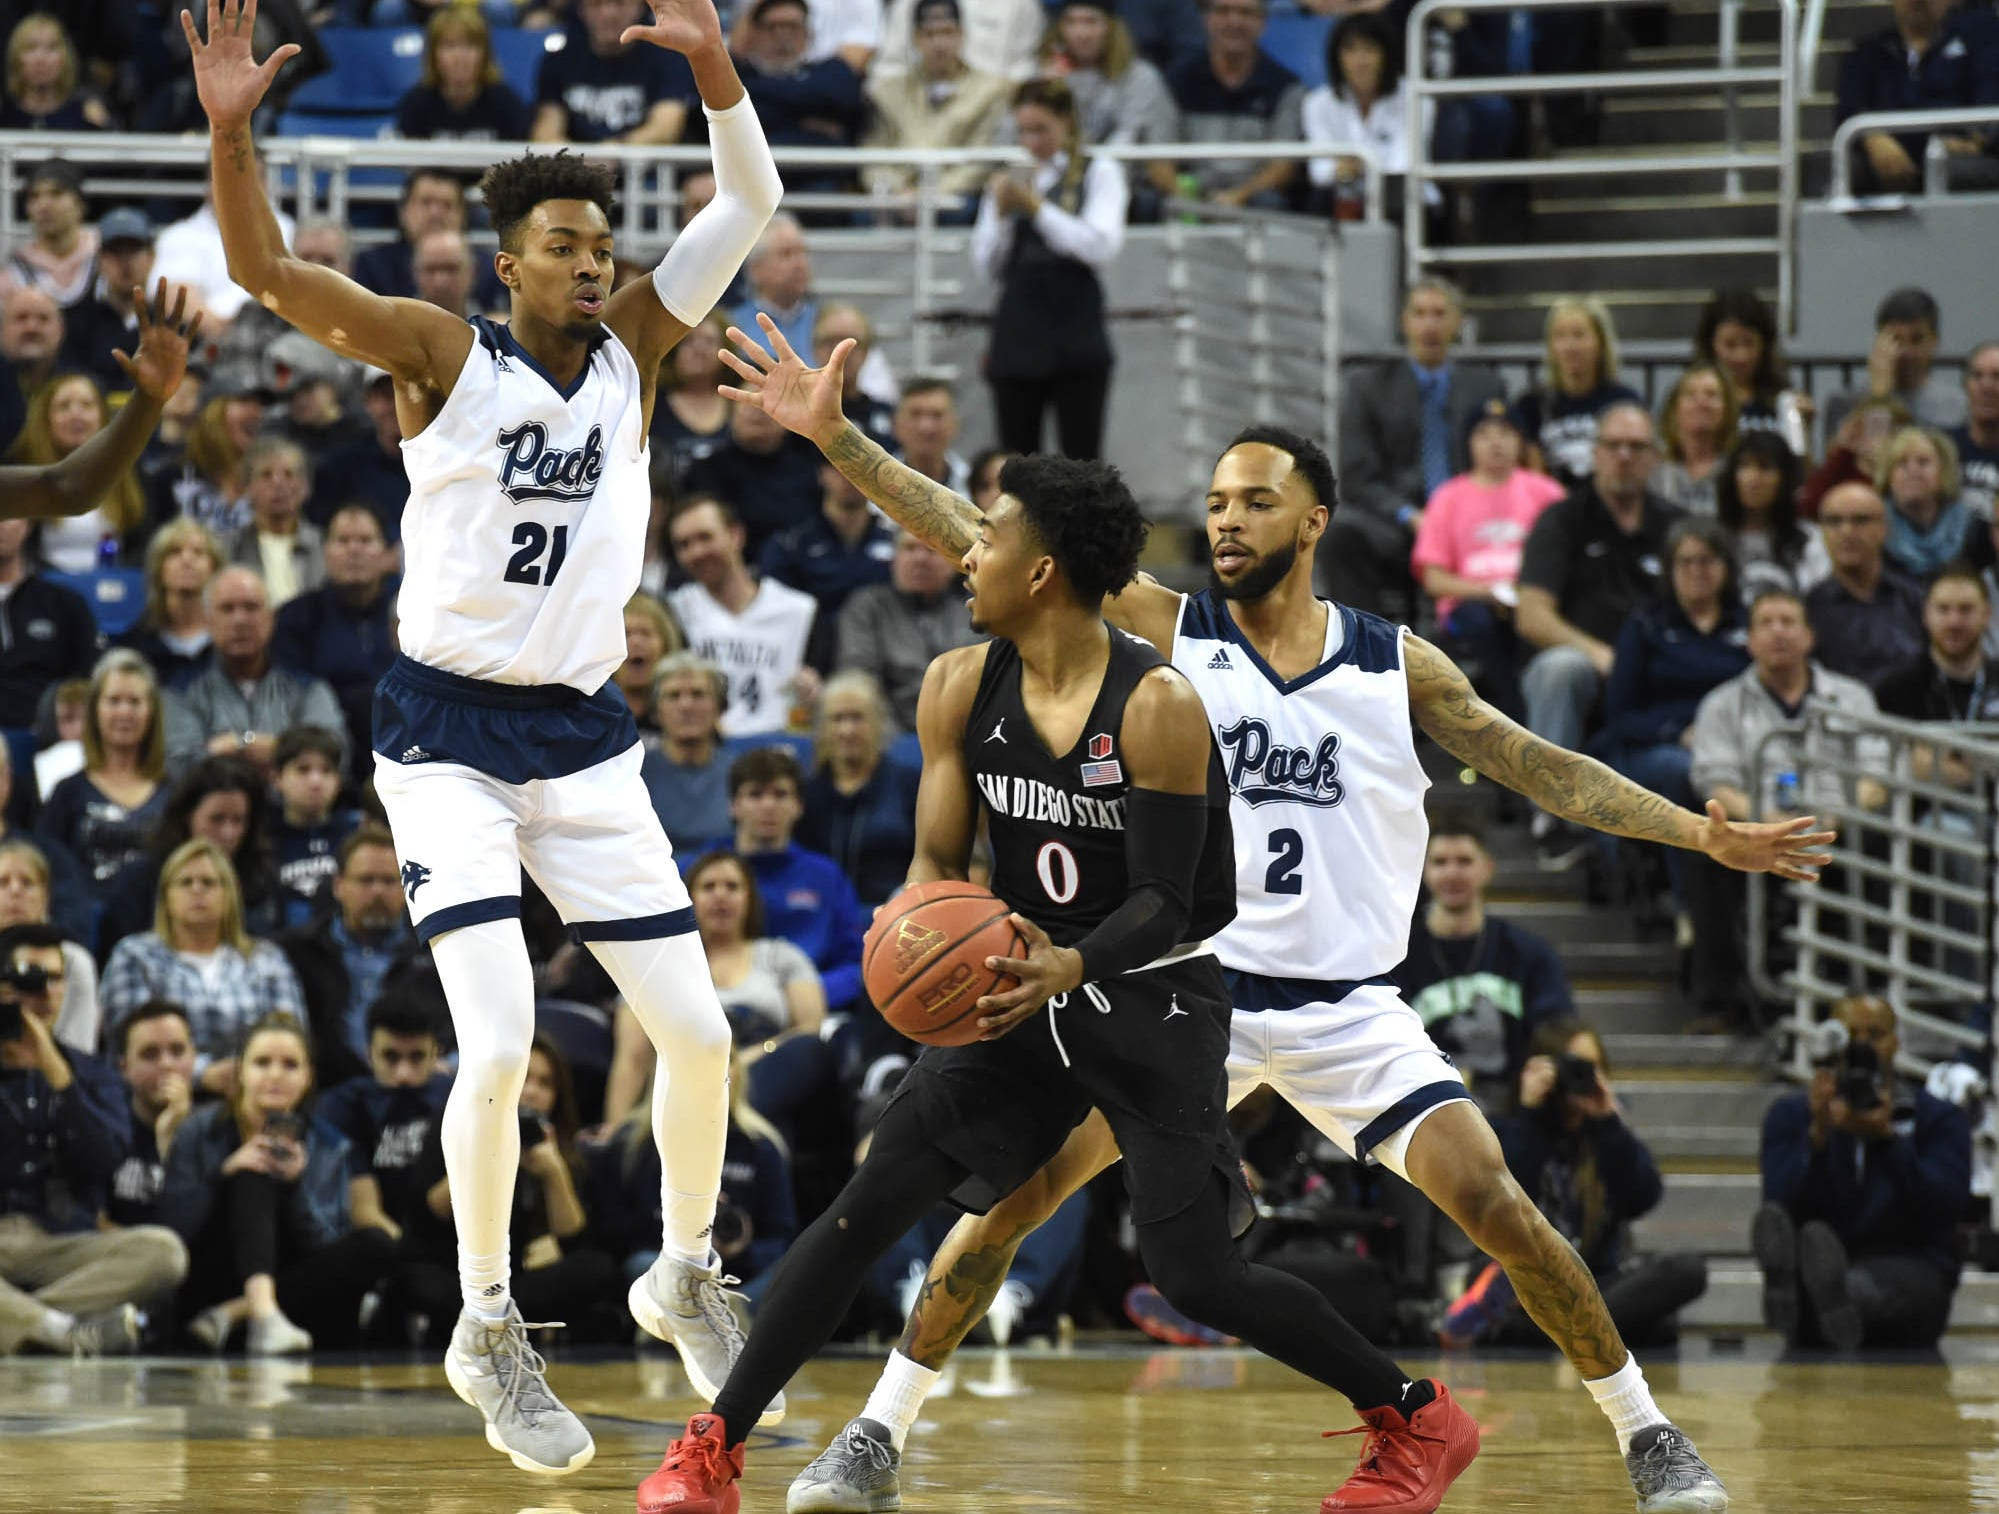 Images of Nevada defeating San Diego State 81-53 on Senior Night at Lawlor Events Center on Saturday March 9, 2019.